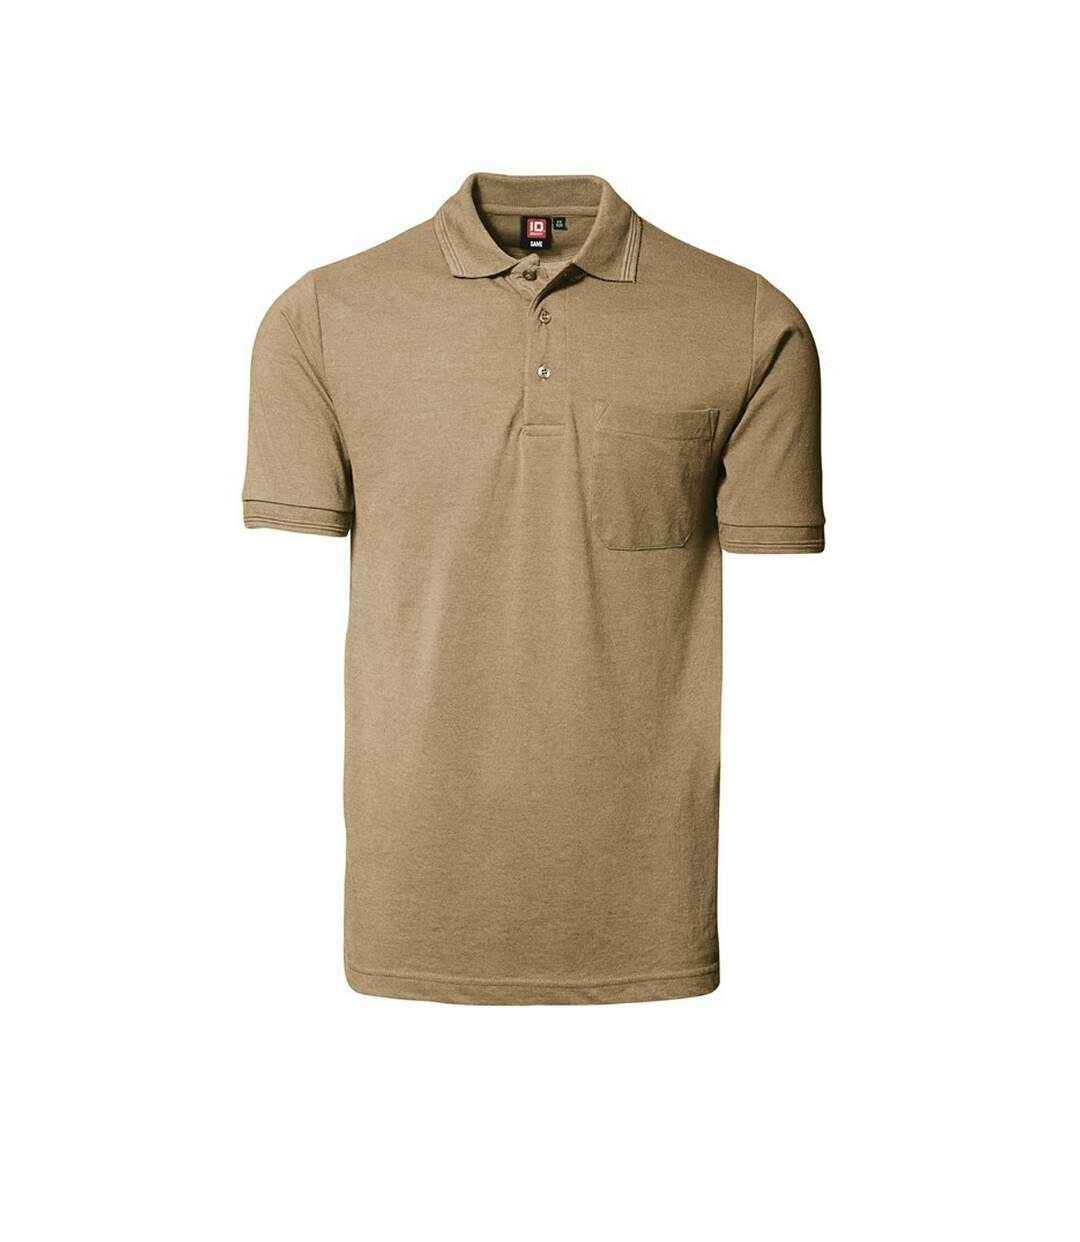 ID Mens Classic Short Sleeve Pique Regular Fitting Polo Shirt With Pocket (Sand) - UTID182